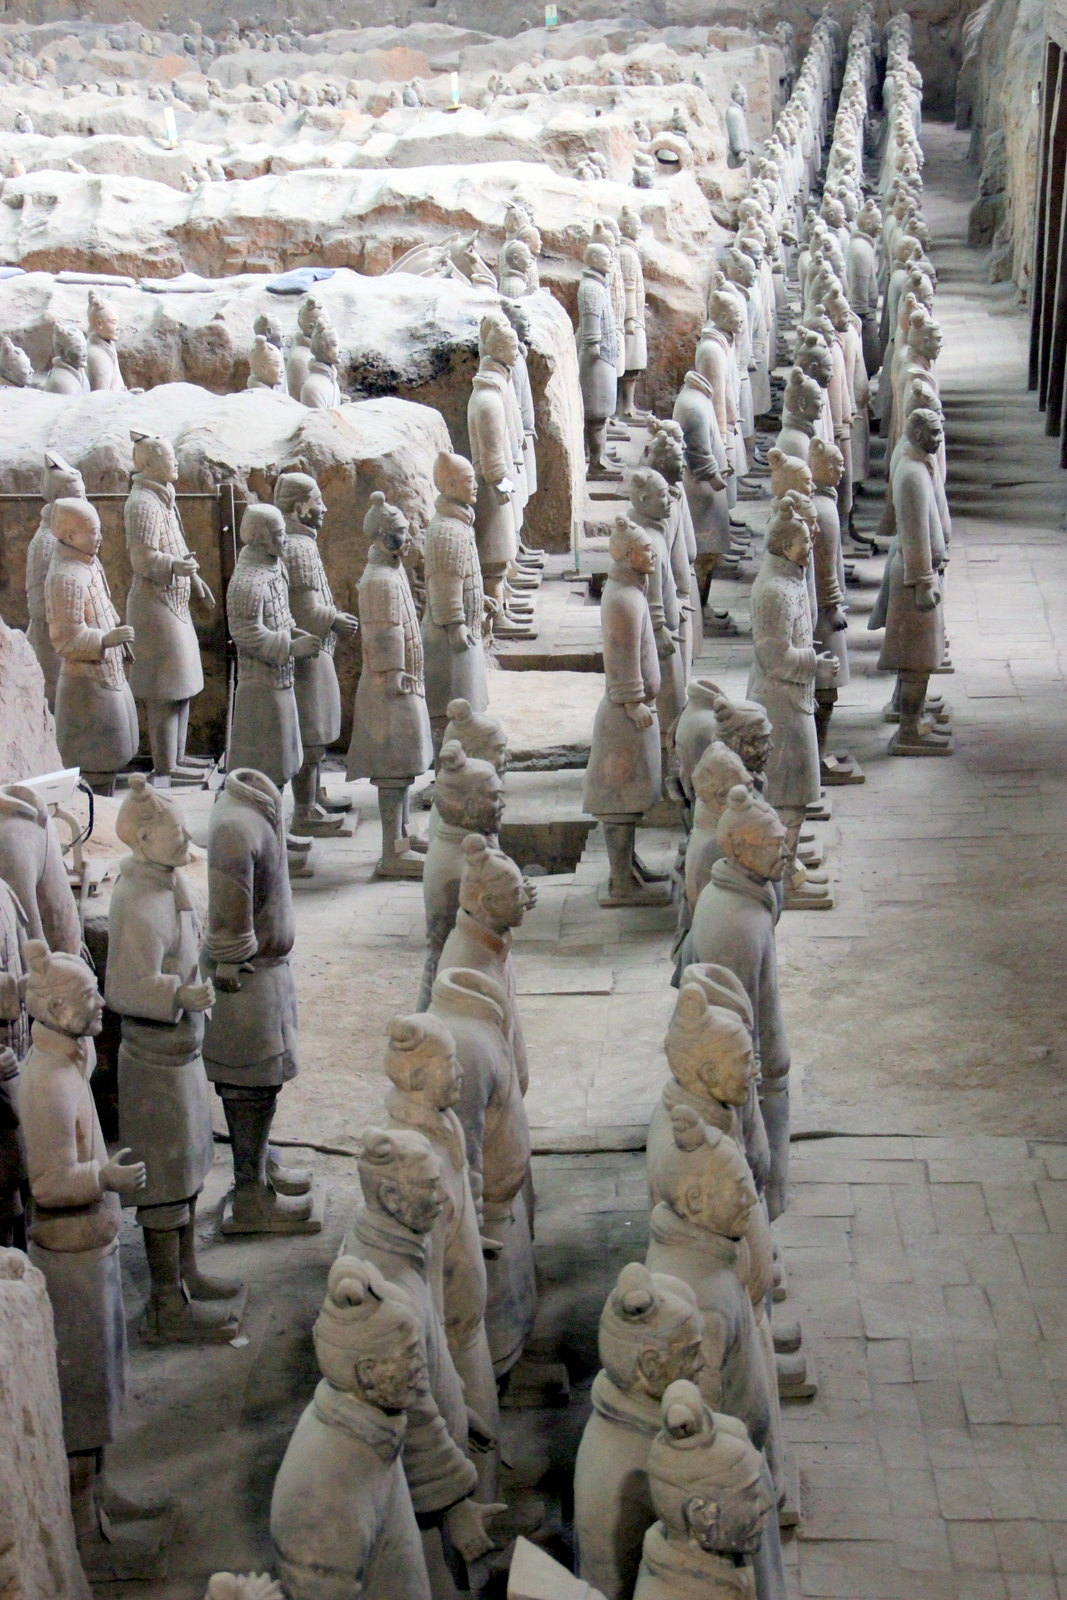 Army of Terracotta Warriors & Horses